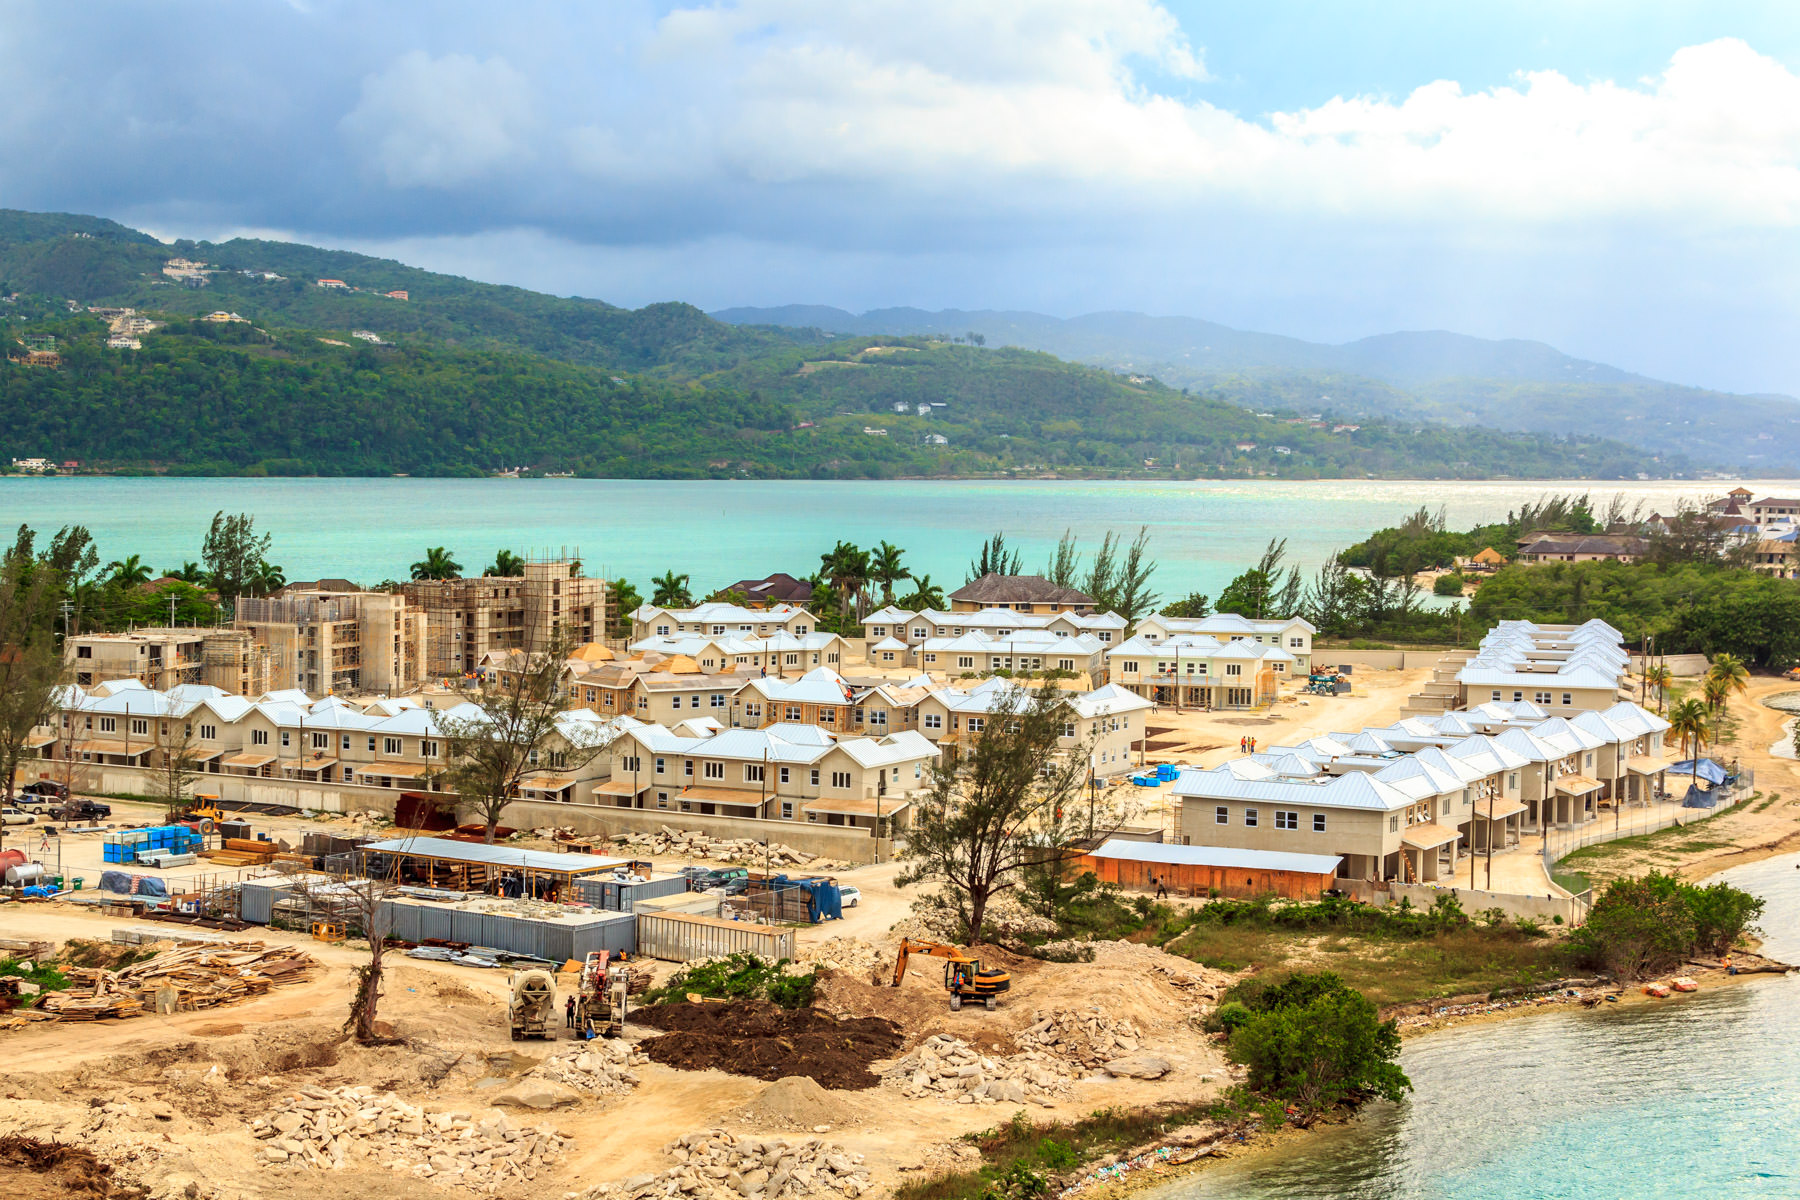 A resort under construction on the shore of Montego Bay, Jamaica.